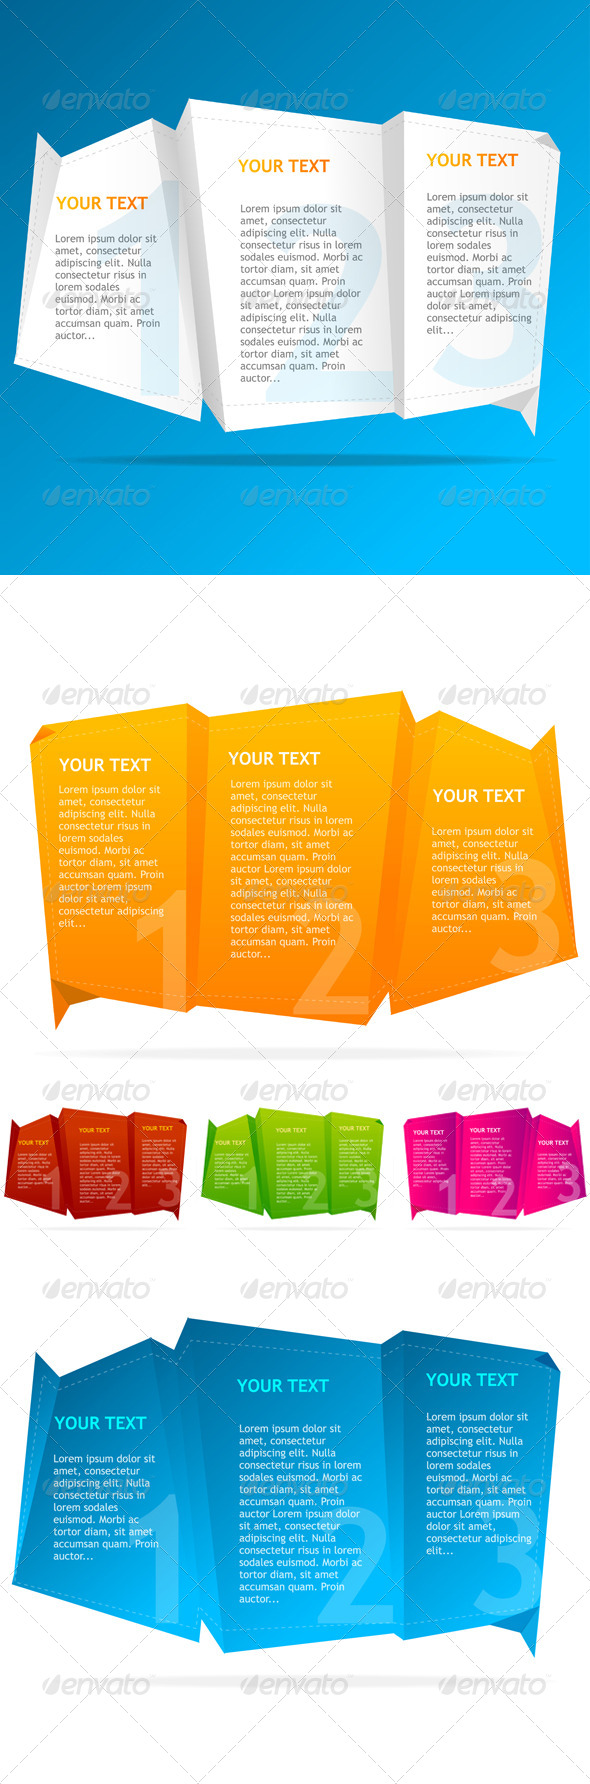 GraphicRiver Speech Templates for Text 6826620